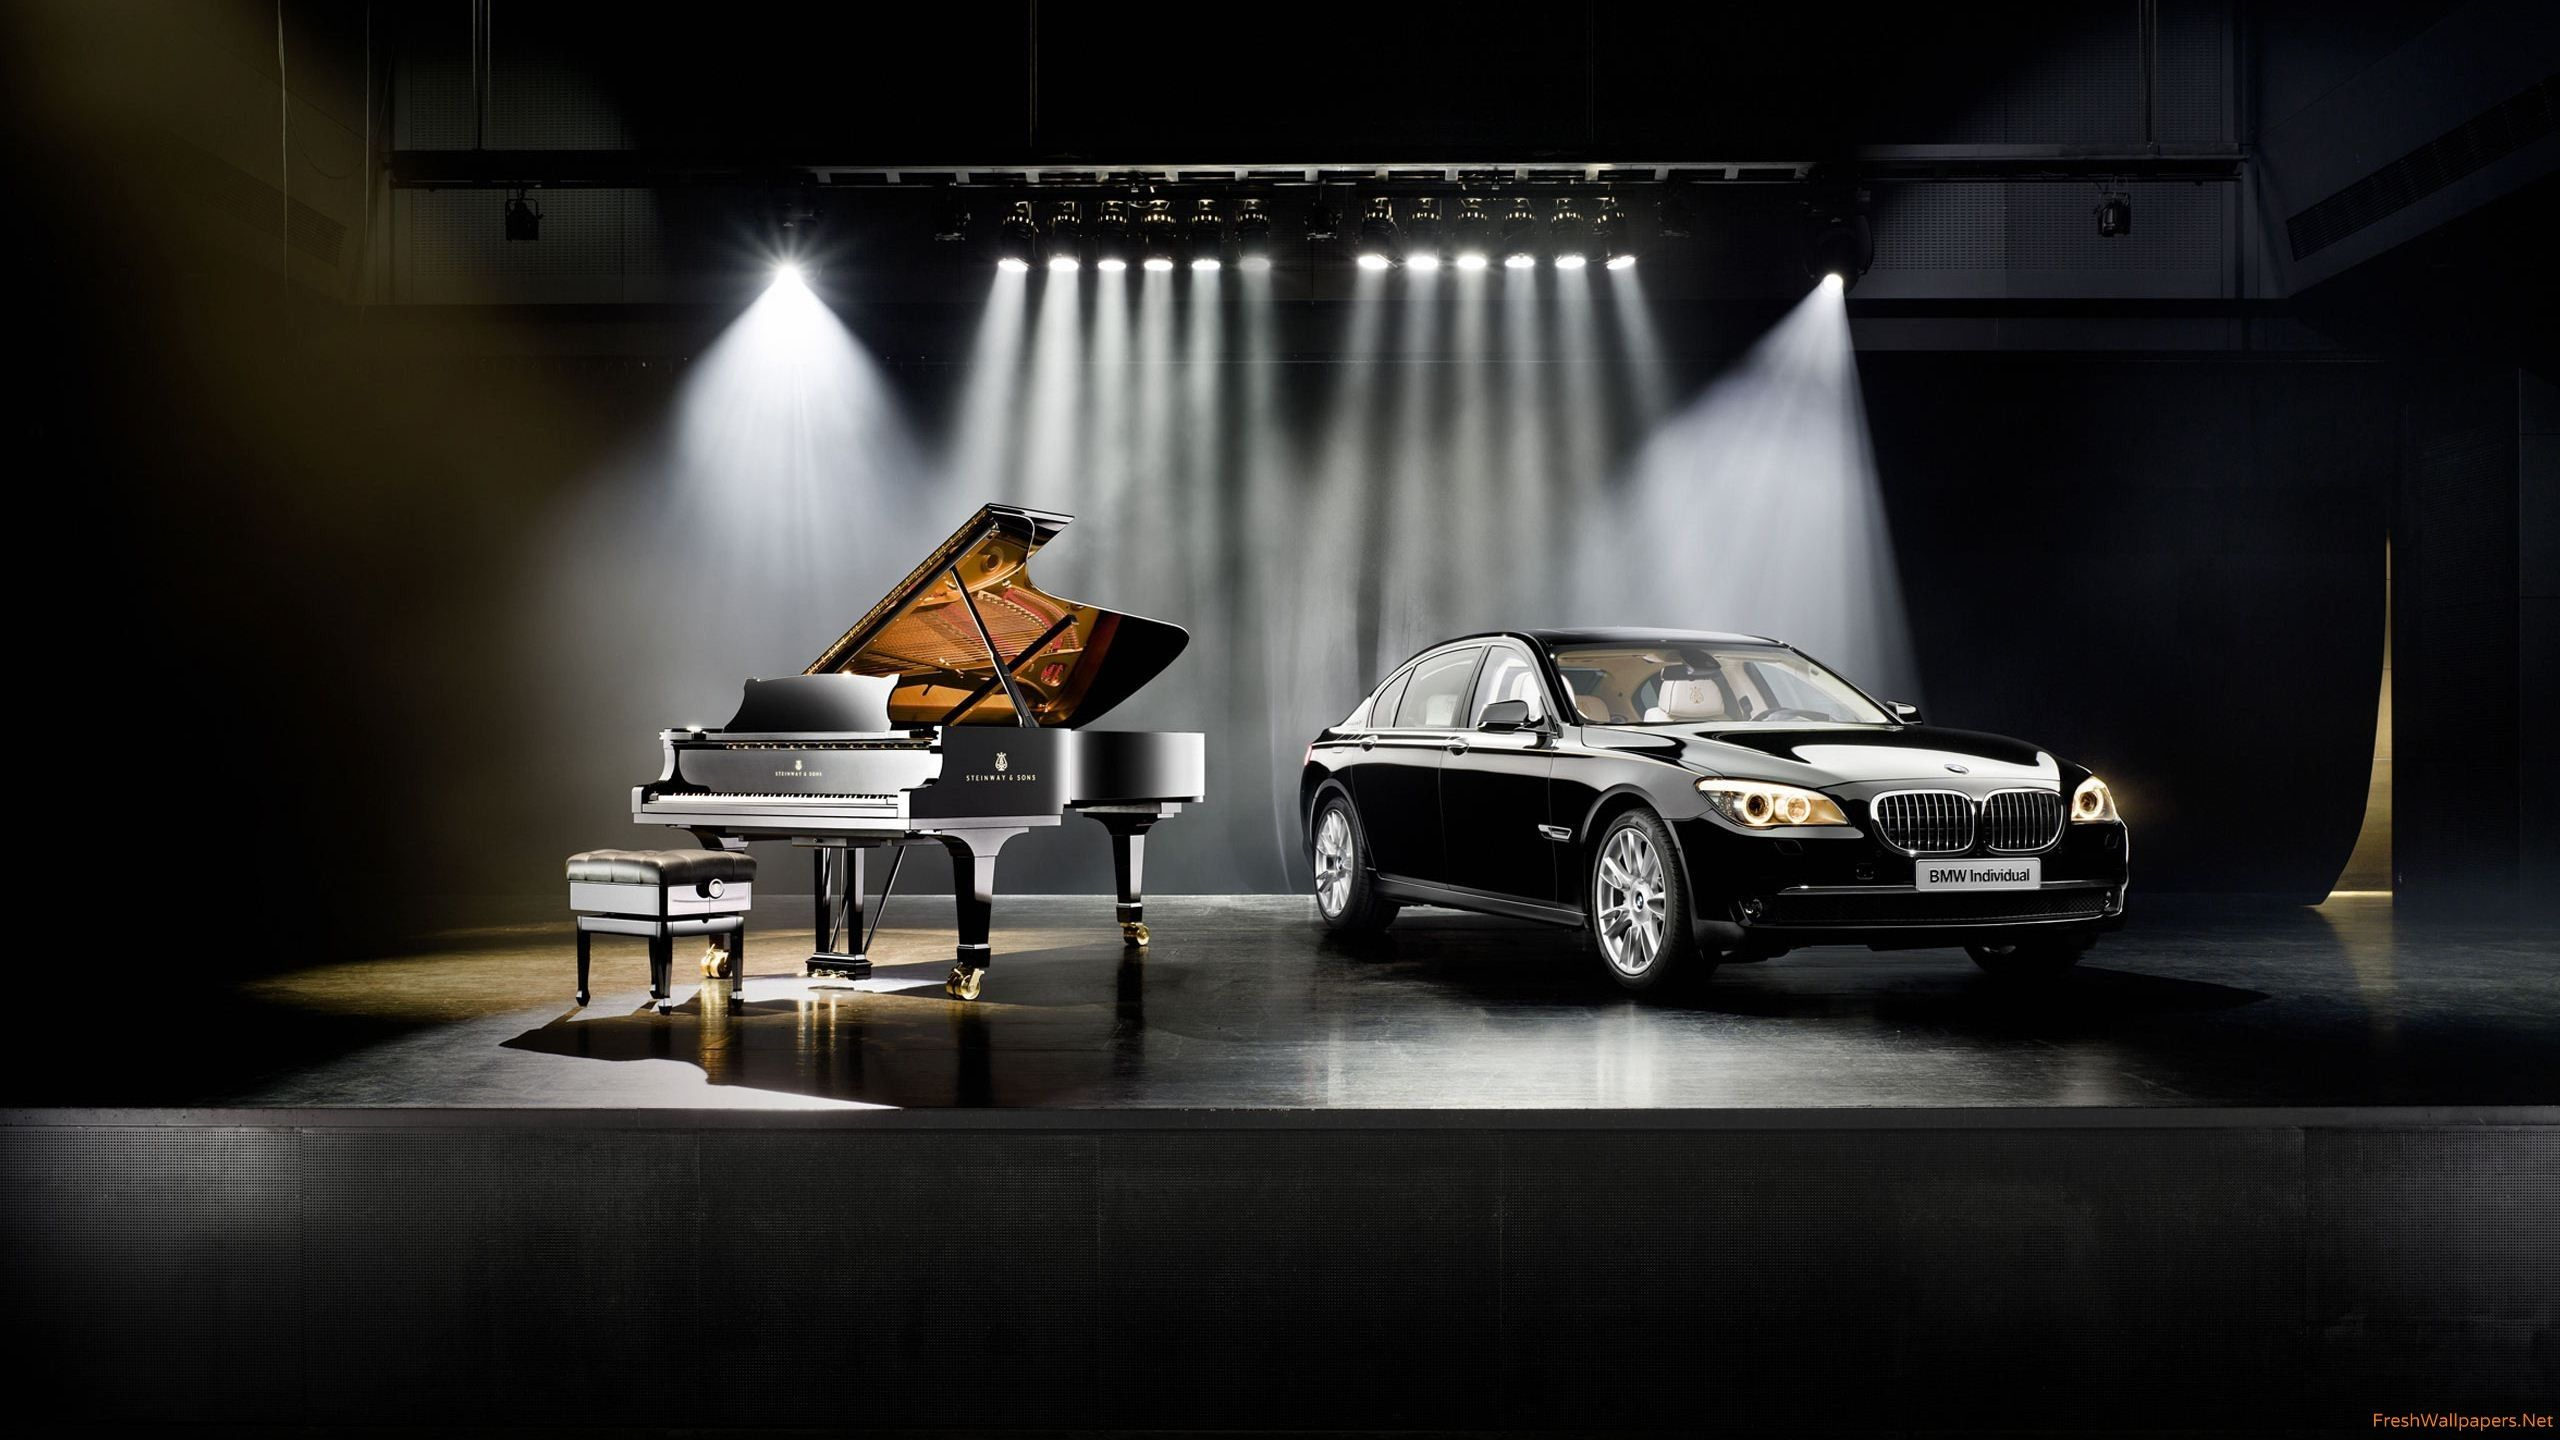 60 Steinway Wallpapers   Download at WallpaperBro 2560x1440